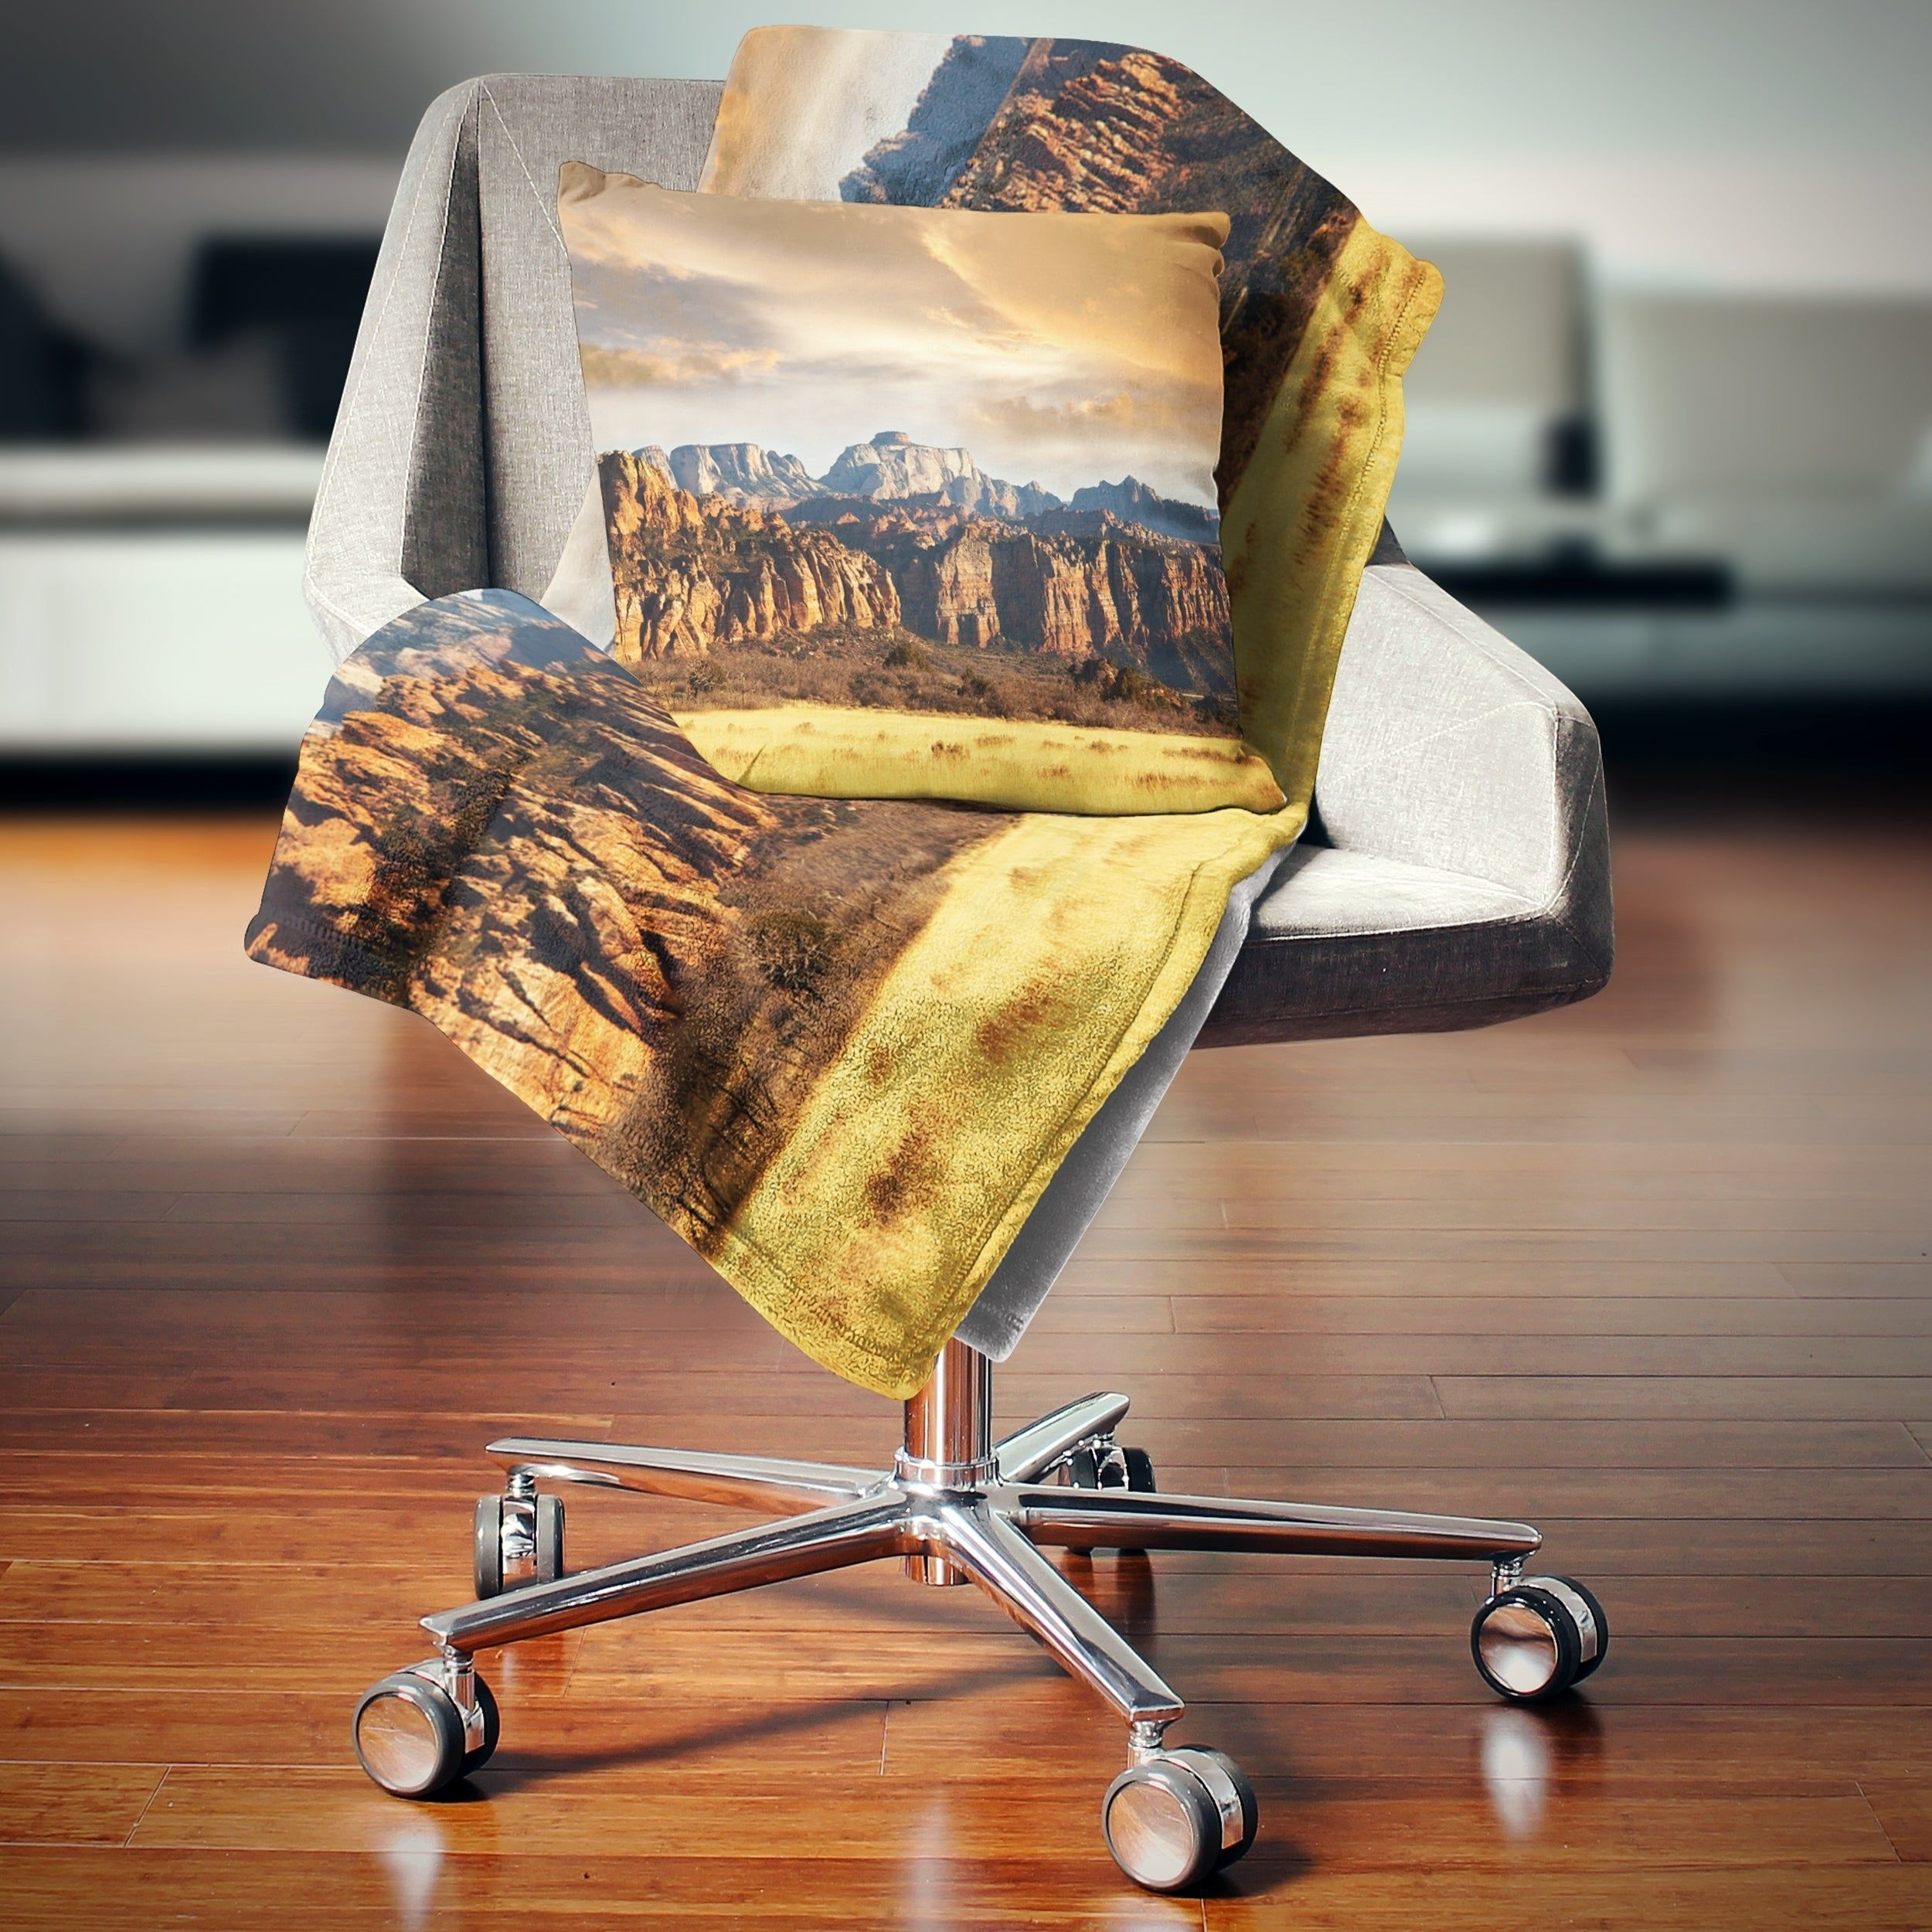 Designart 'Zion National Park Utah Usa' Landscape Fleece Throw Blanket | Overstock.com Shopping - The Best Deals on Blankets & Throws #utahusa